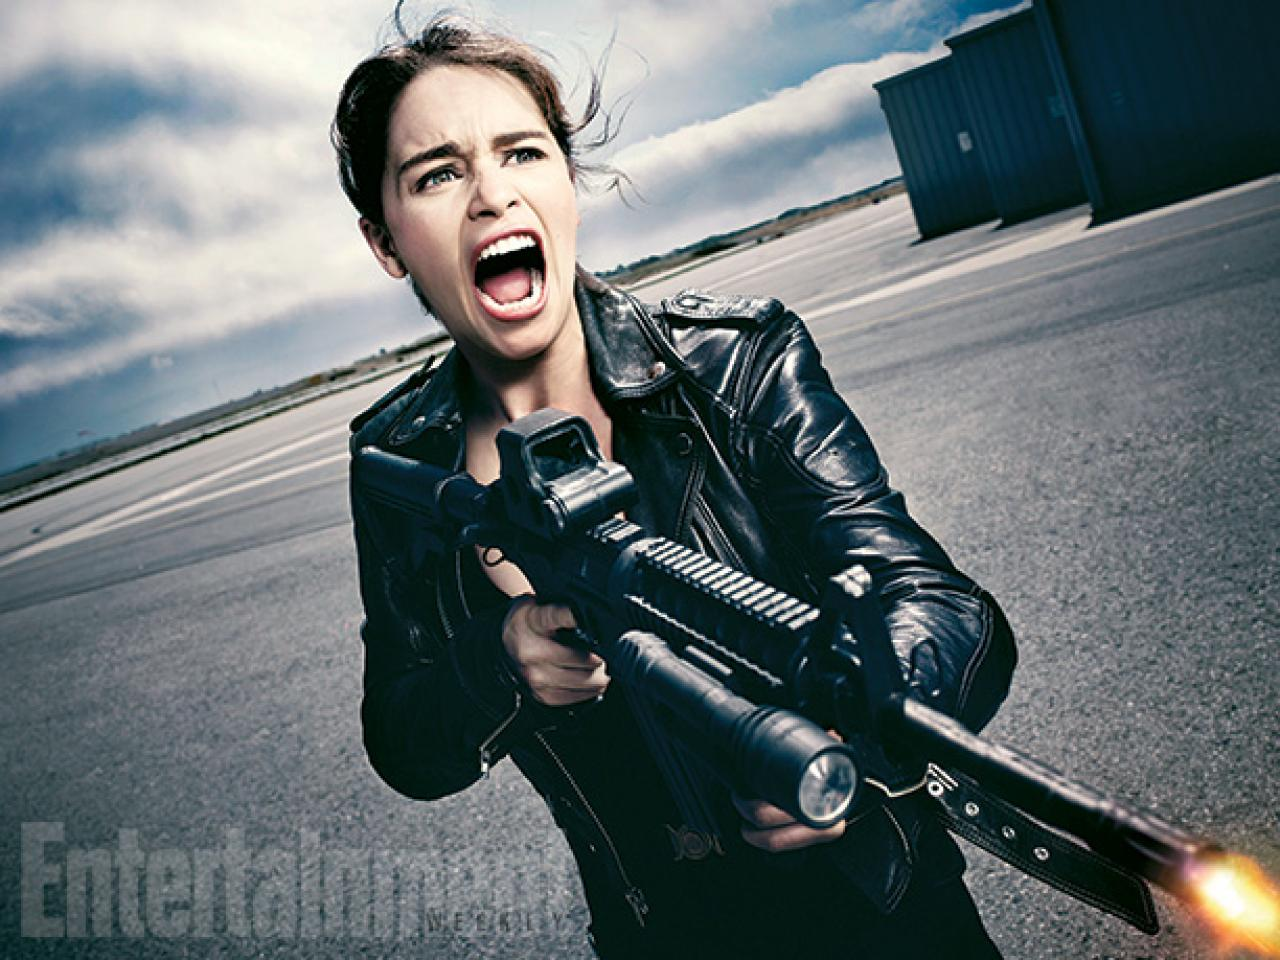 Terminator Genisys (2015) - Entertainment Weekly 05